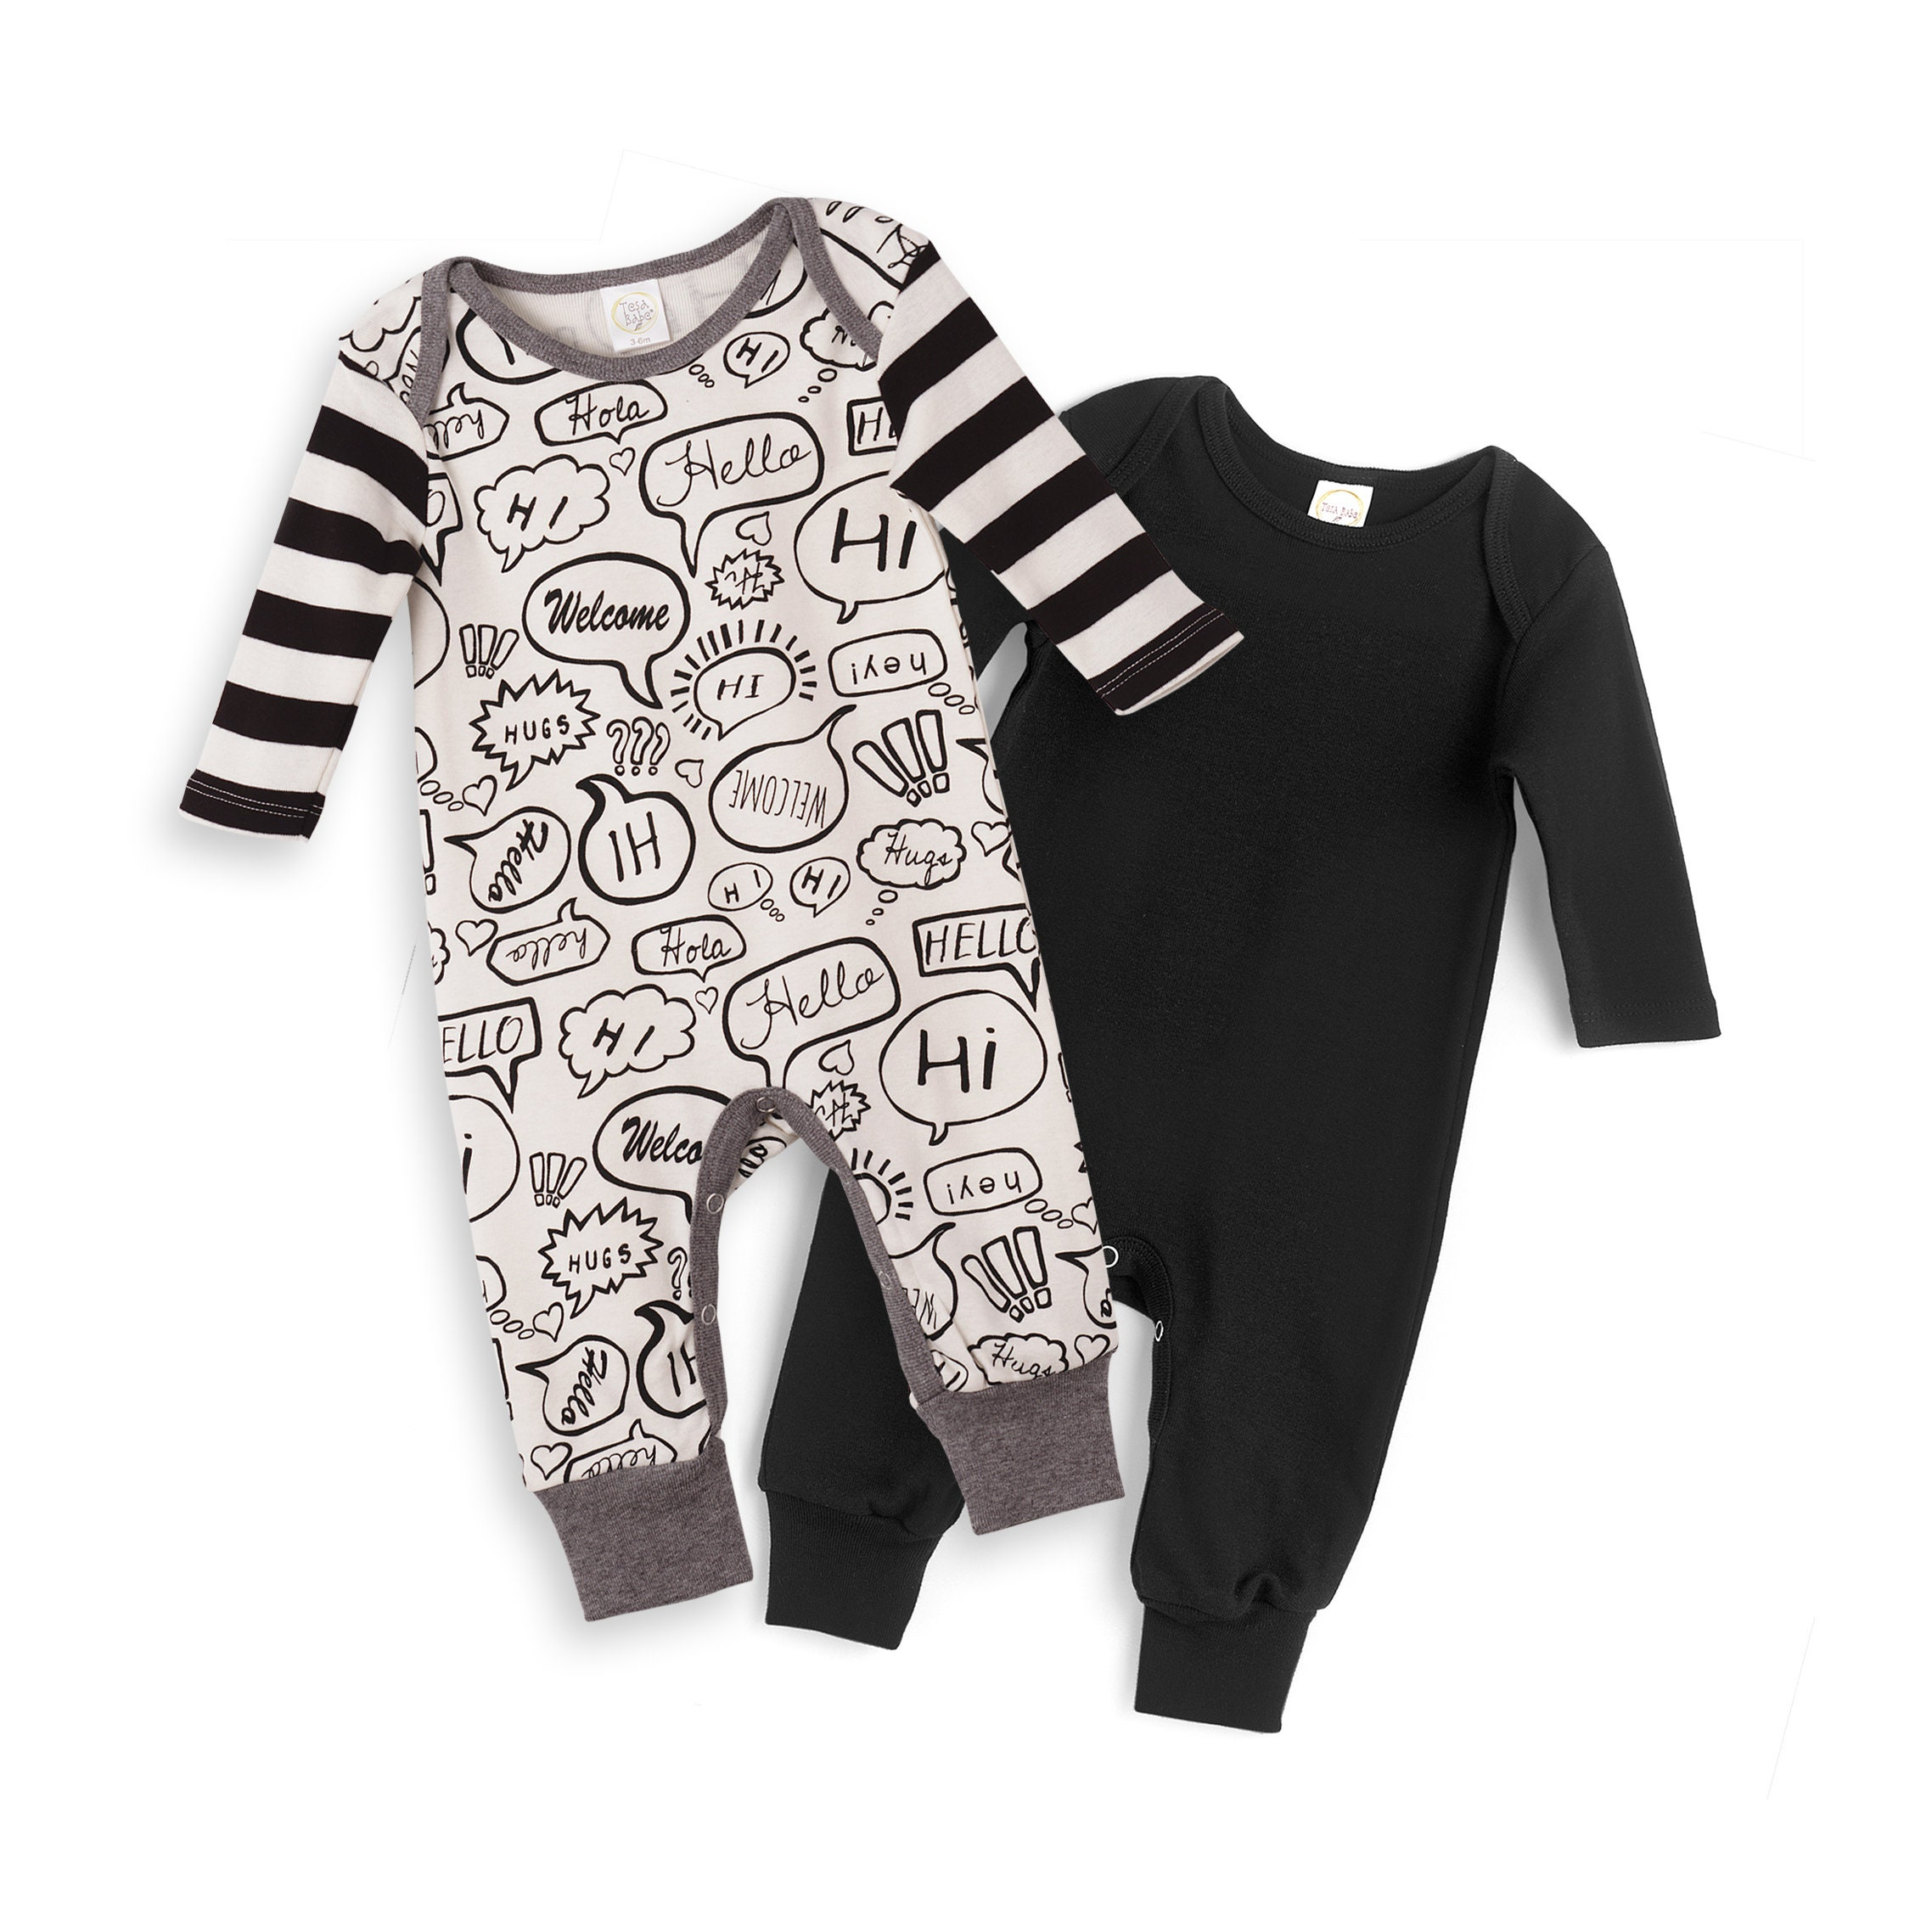 e767ab9efa0 Newborn Baby Rompers Black   Hello World Set of 2